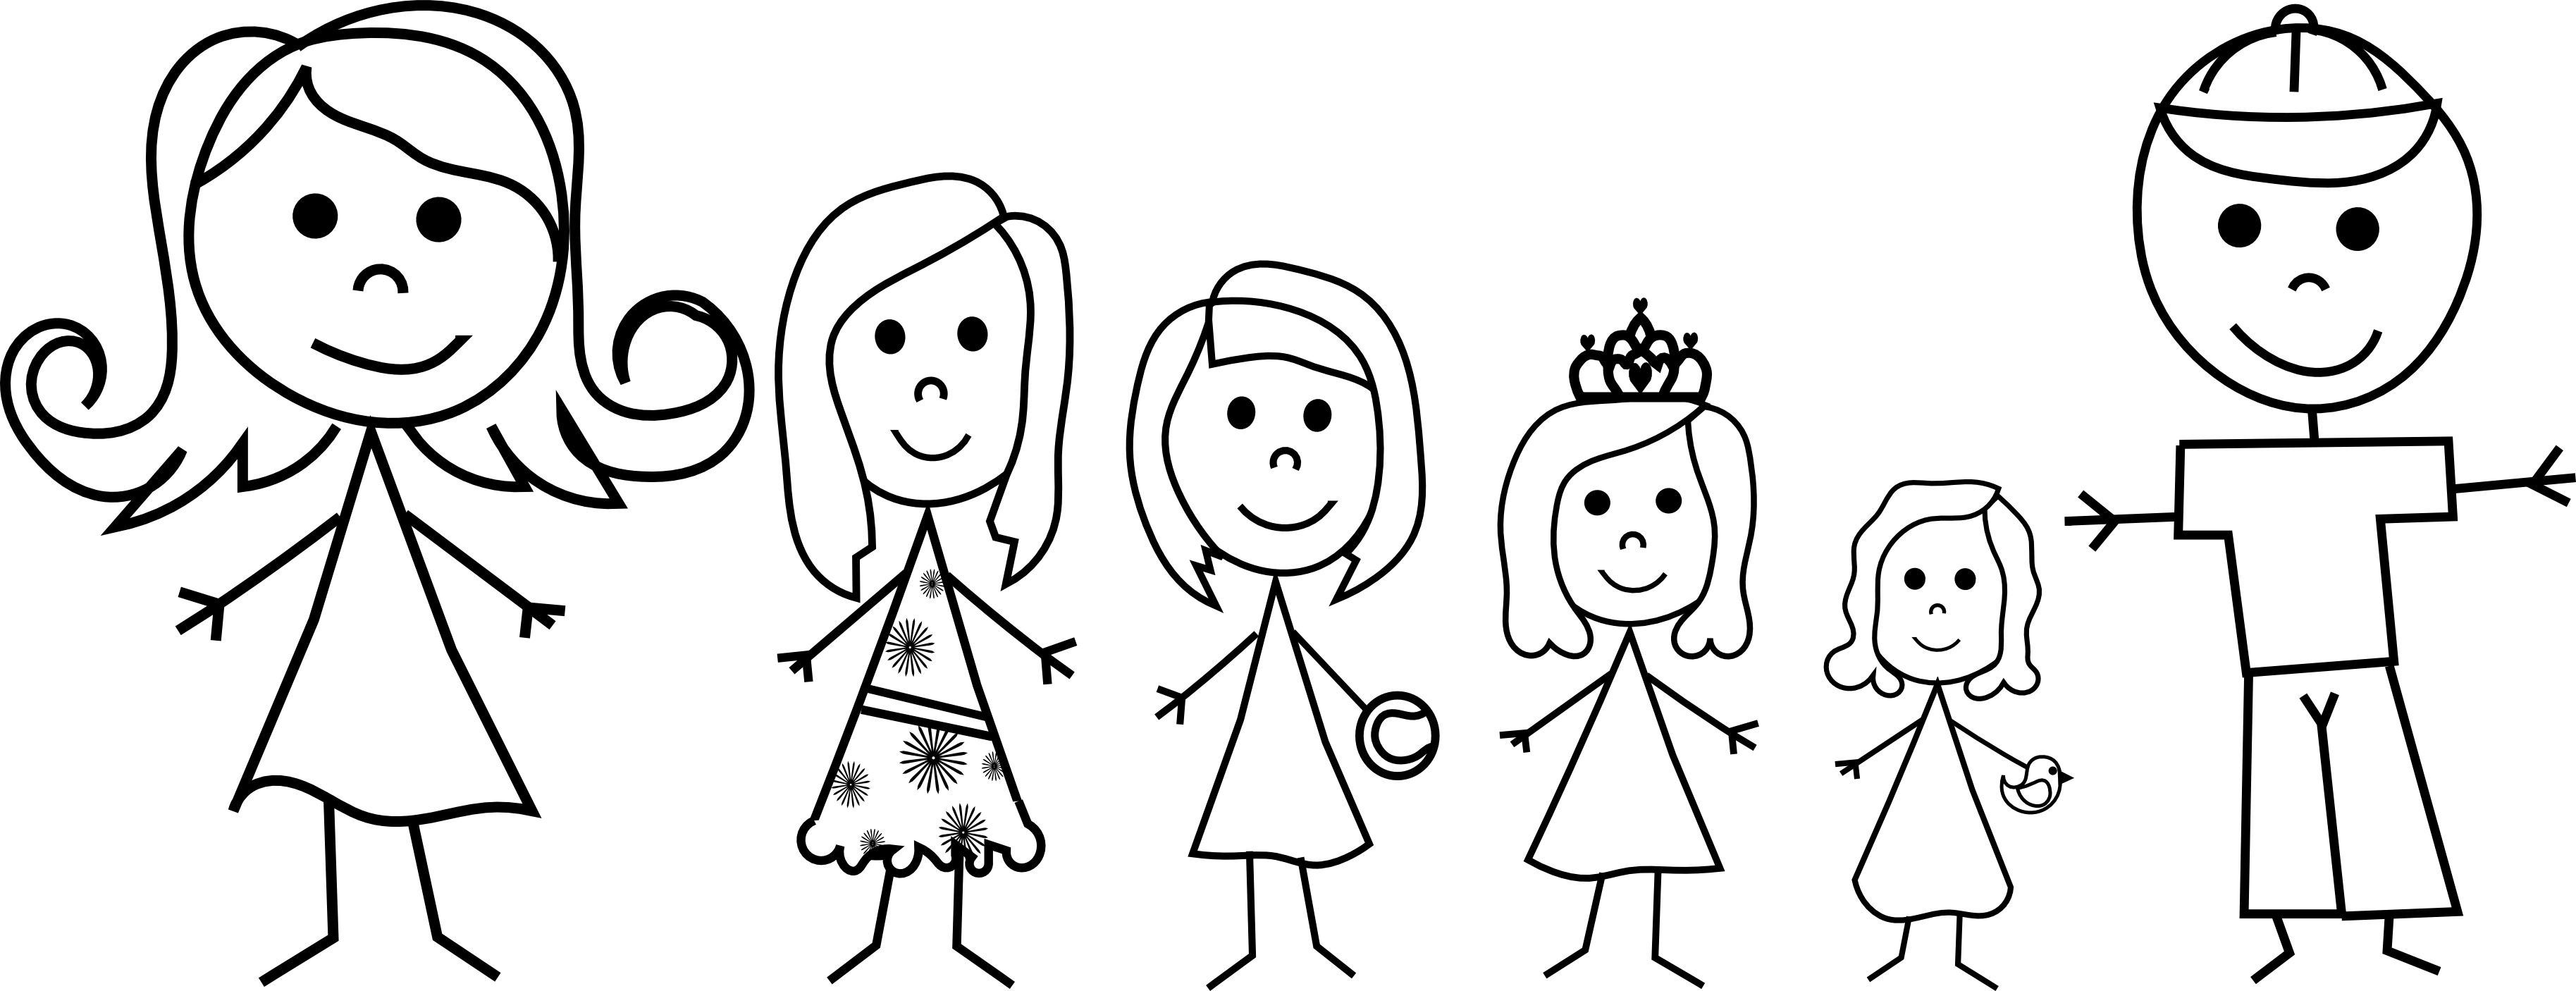 Free Stick Family Download Free Clip Art Free Clip Art